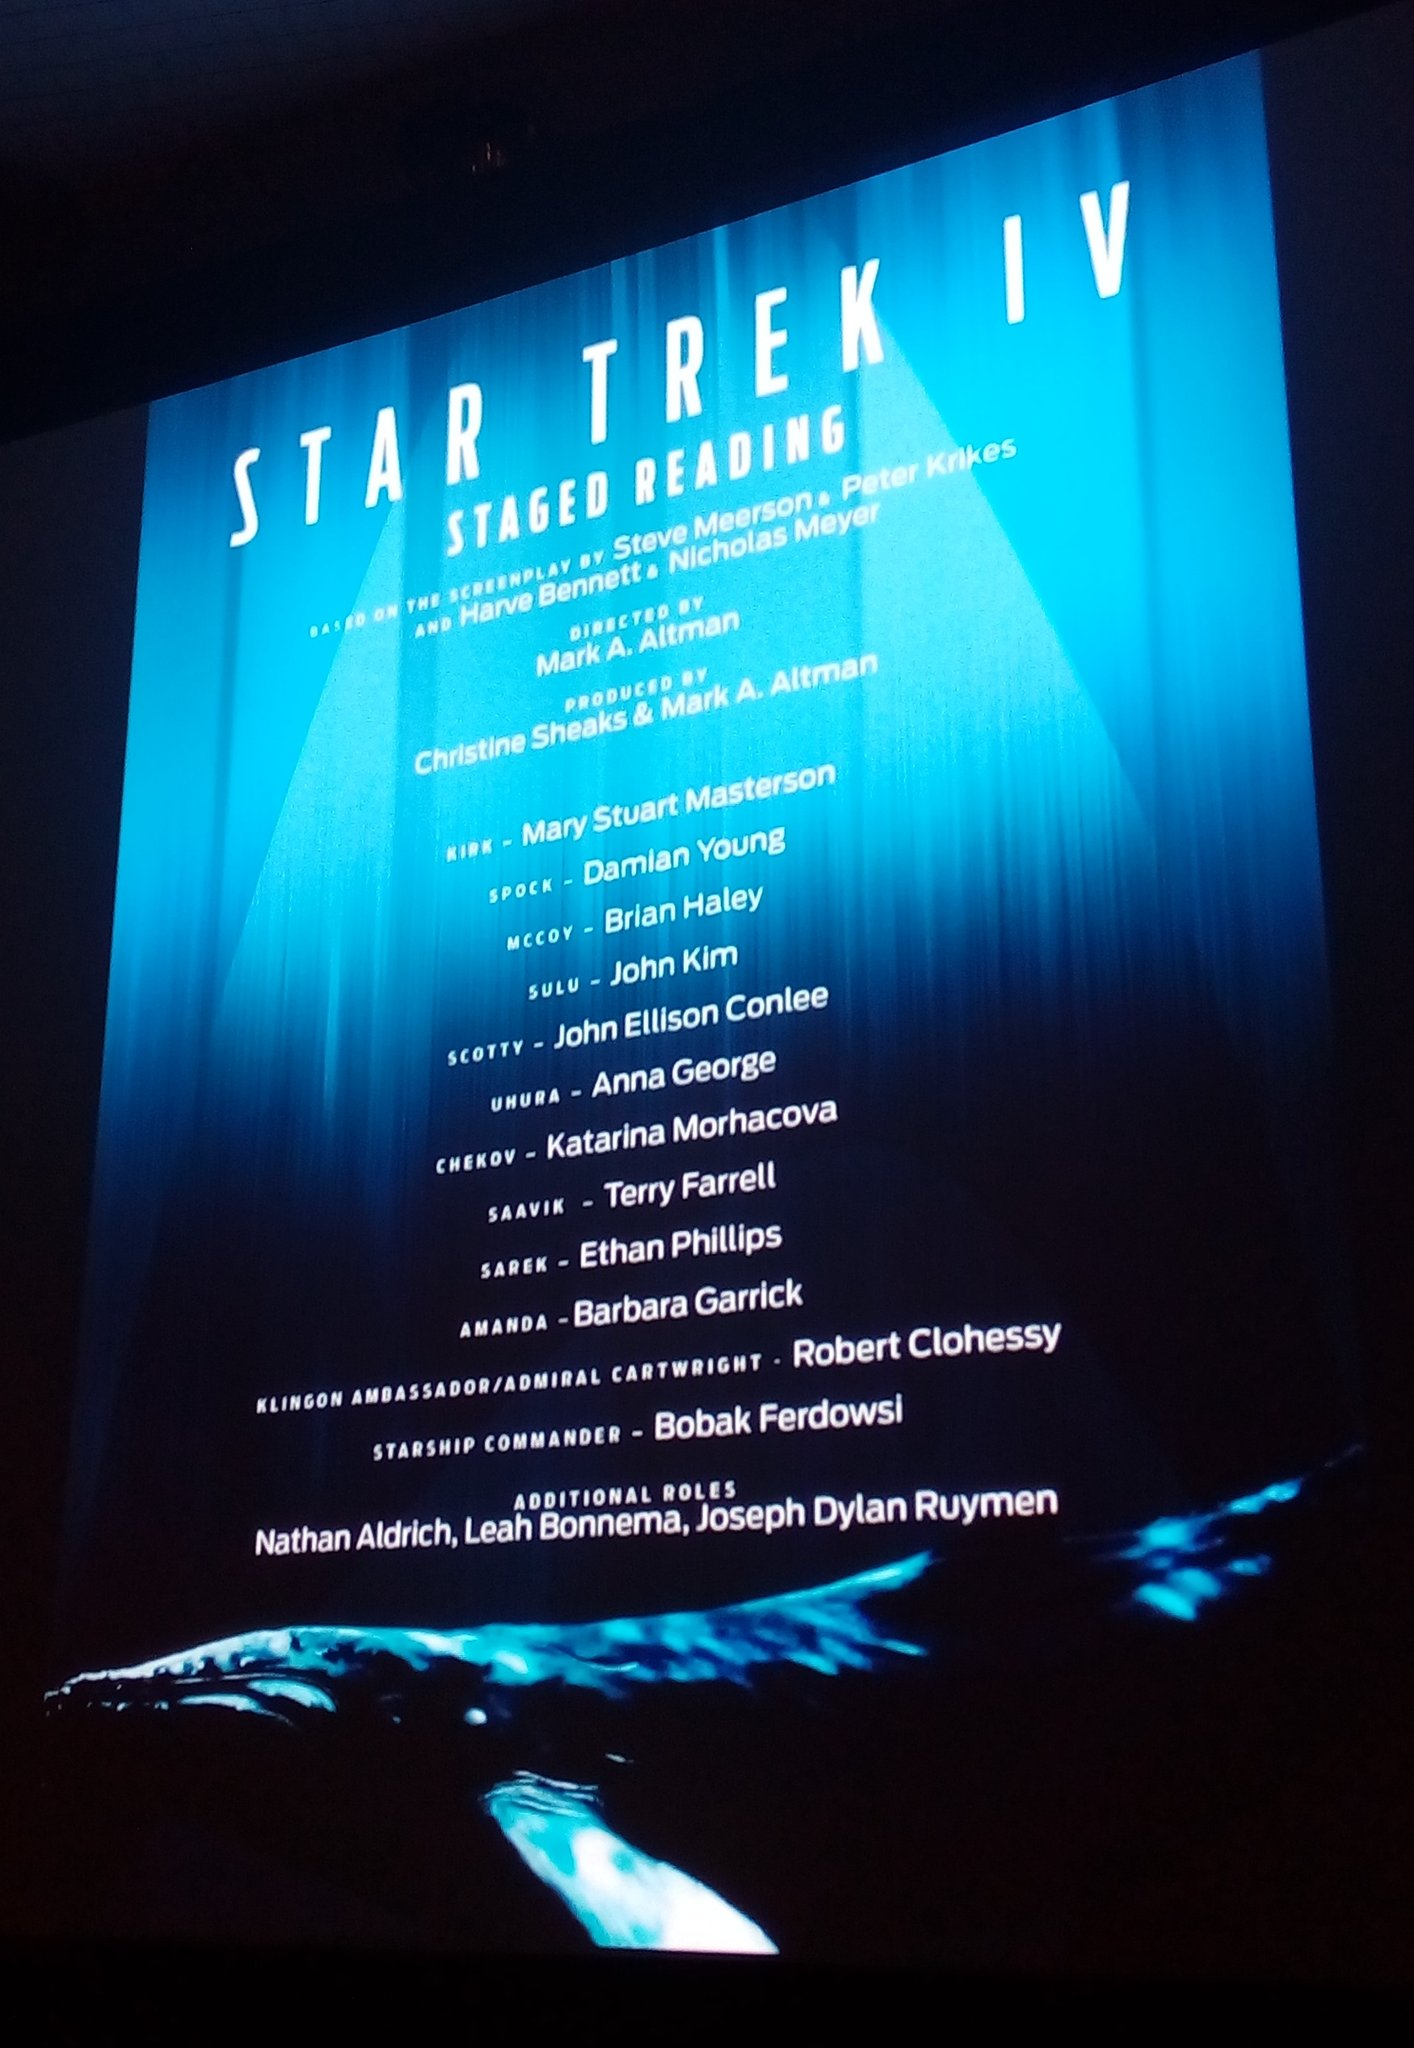 Your cast list for today's staged reading of Star Trek IV at #StarTrekNY https://t.co/3zyB9QLSOe